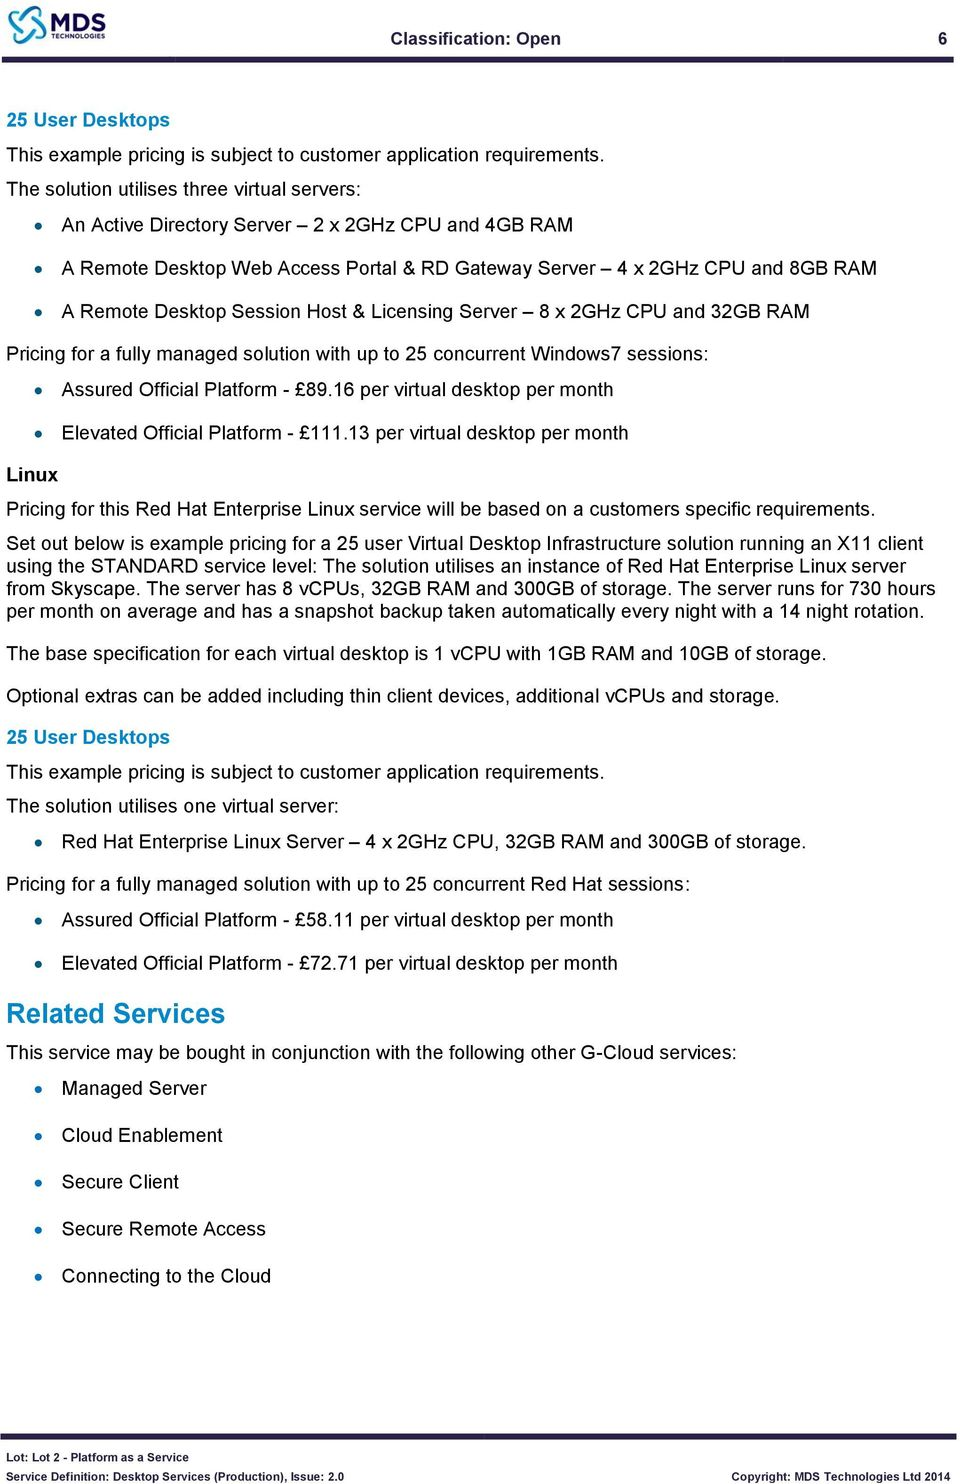 Session Host & Licensing Server 8 x 2GHz CPU and 32GB RAM Pricing for a fully managed solution with up to 25 concurrent Windows7 sessions: Linux Assured Official Platform - 89.